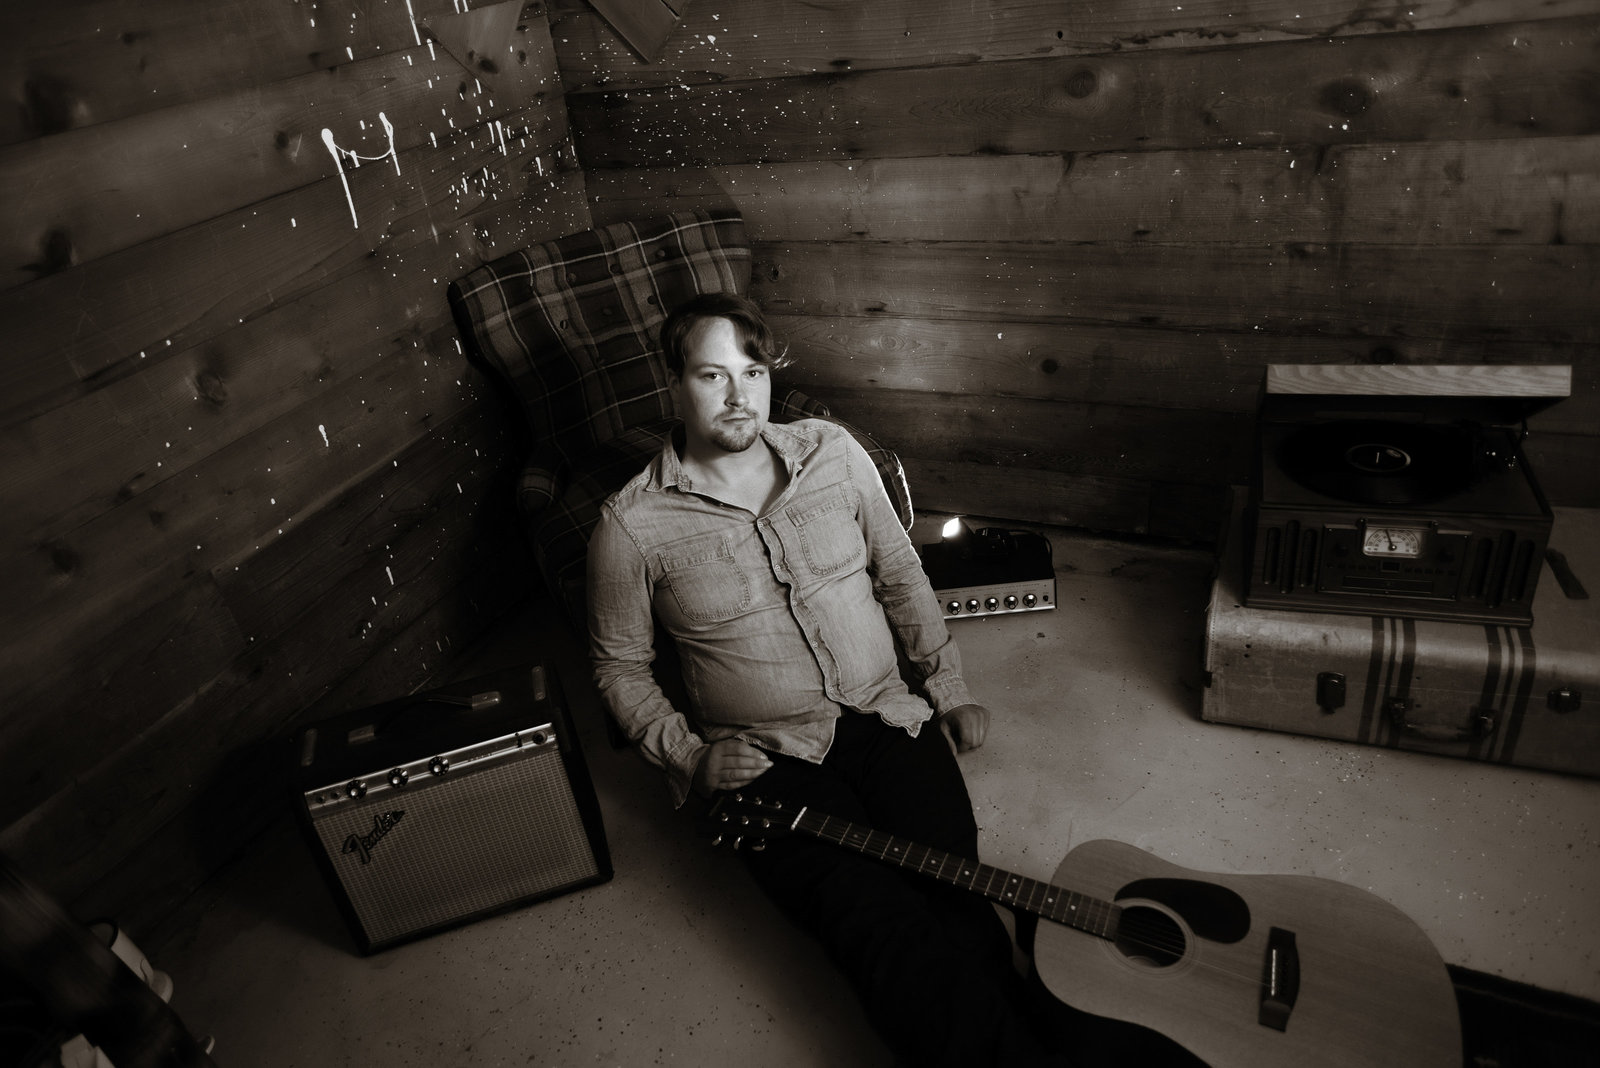 mikael pederson sits in his basement surrounded by his guitar and amps